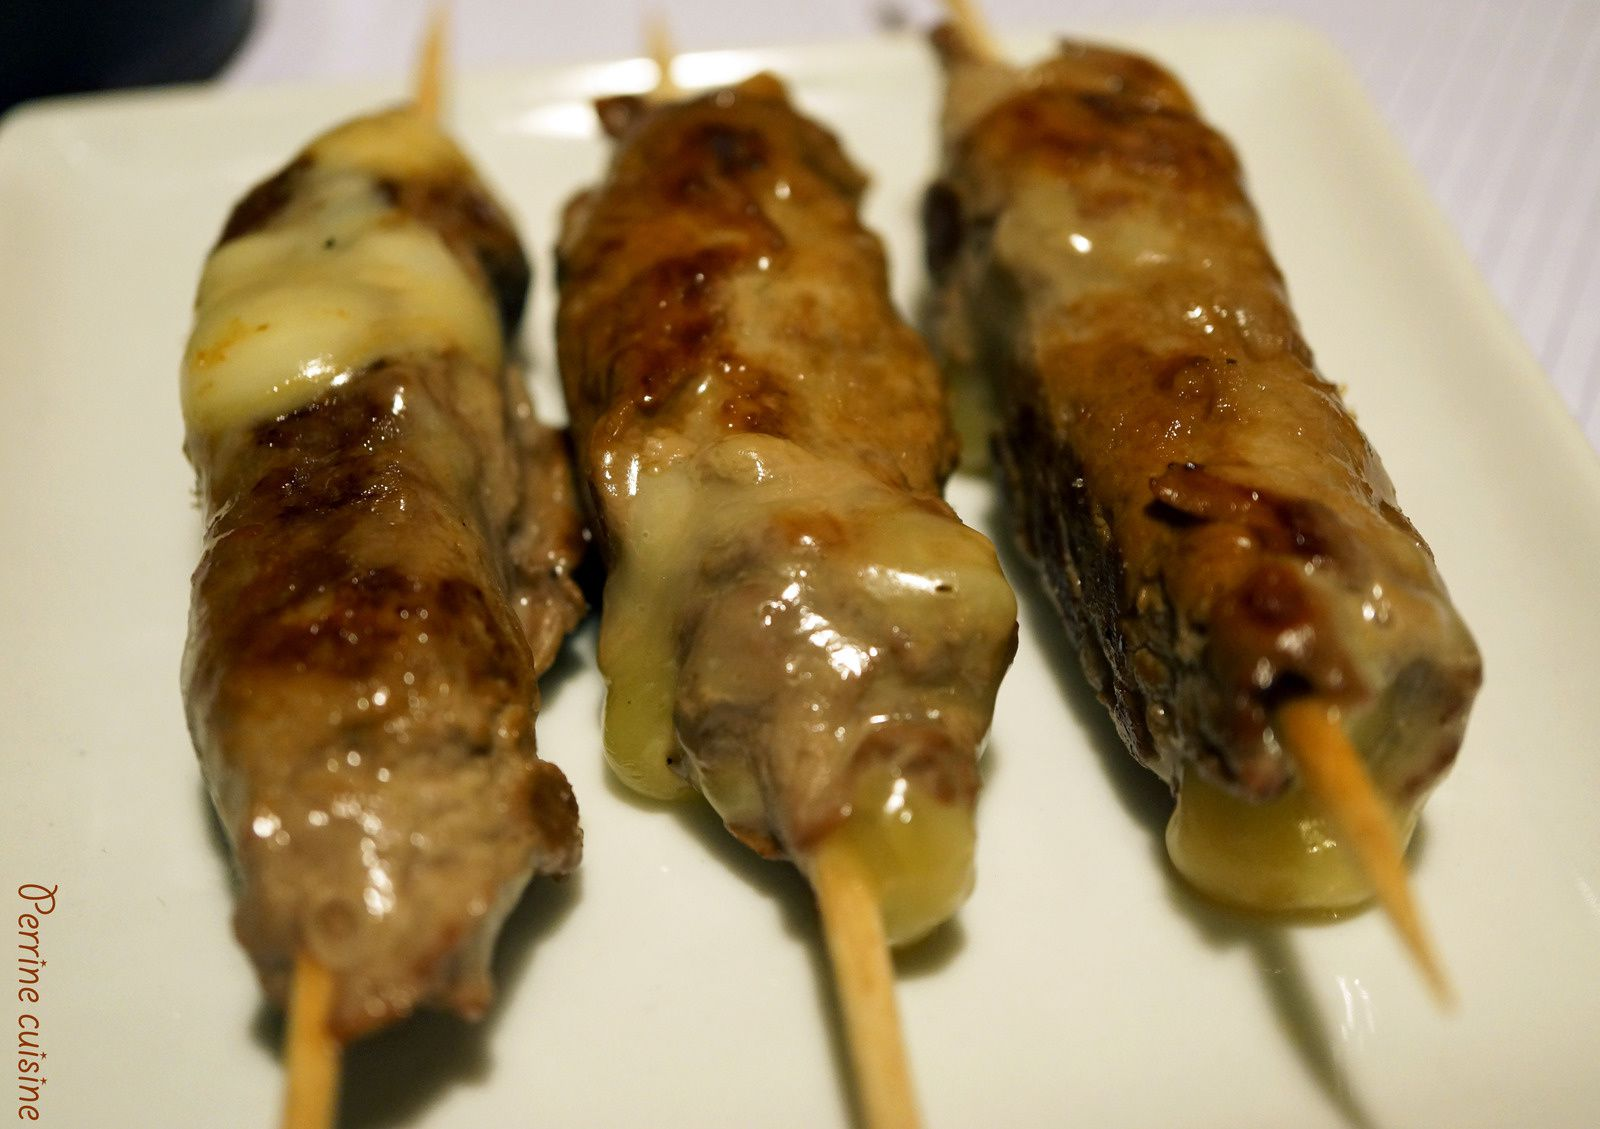 Brochettes japonaises au miel de Bourdaine Beautiful Beez